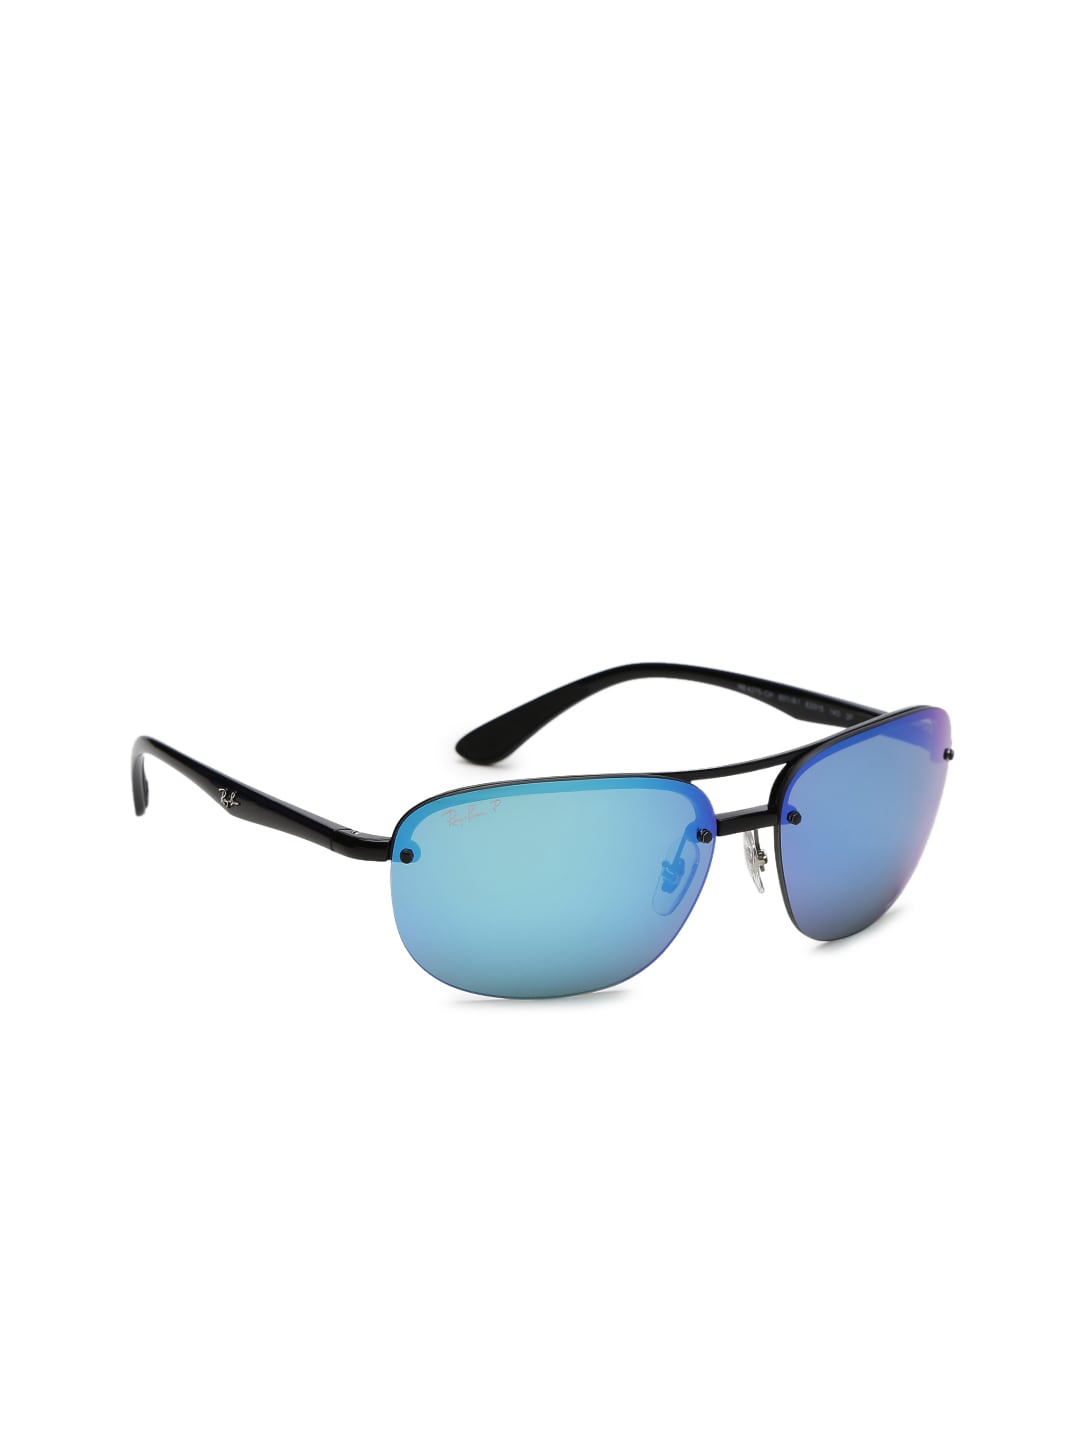 ce3fc46ed8e Ray Ban - Buy Ray Ban Sunglasses   Frames Online In India